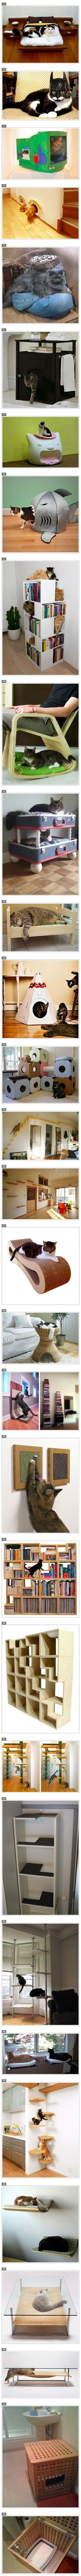 Is your cat needy and hard to please? Here are some geeky pieces of furniture, gadgets, and accessories designed specifically for your feline friends. *this is super cool